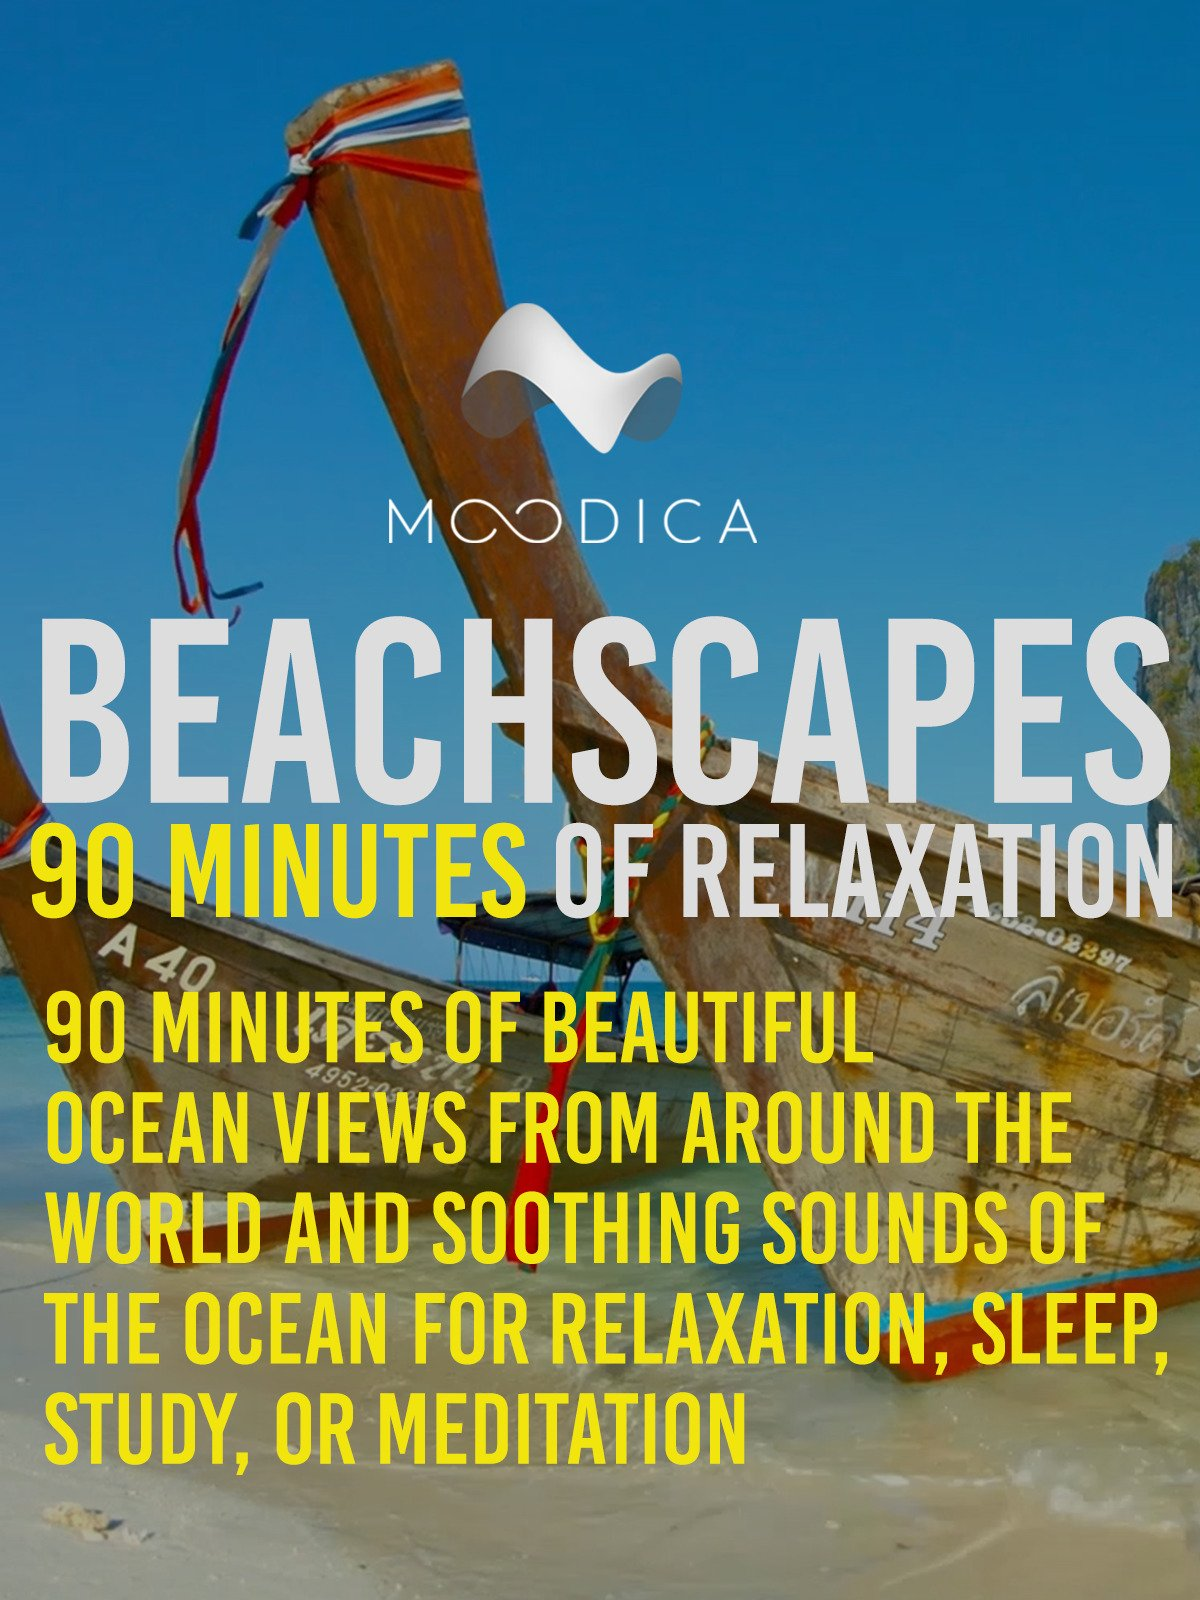 Beachscapes: 90 Minutes of Relaxation: 90 Minutes of Beautiful Ocean Views From Around The World and Soothing Sounds of the Ocean for Relaxation, Sleep, Study, or Meditation